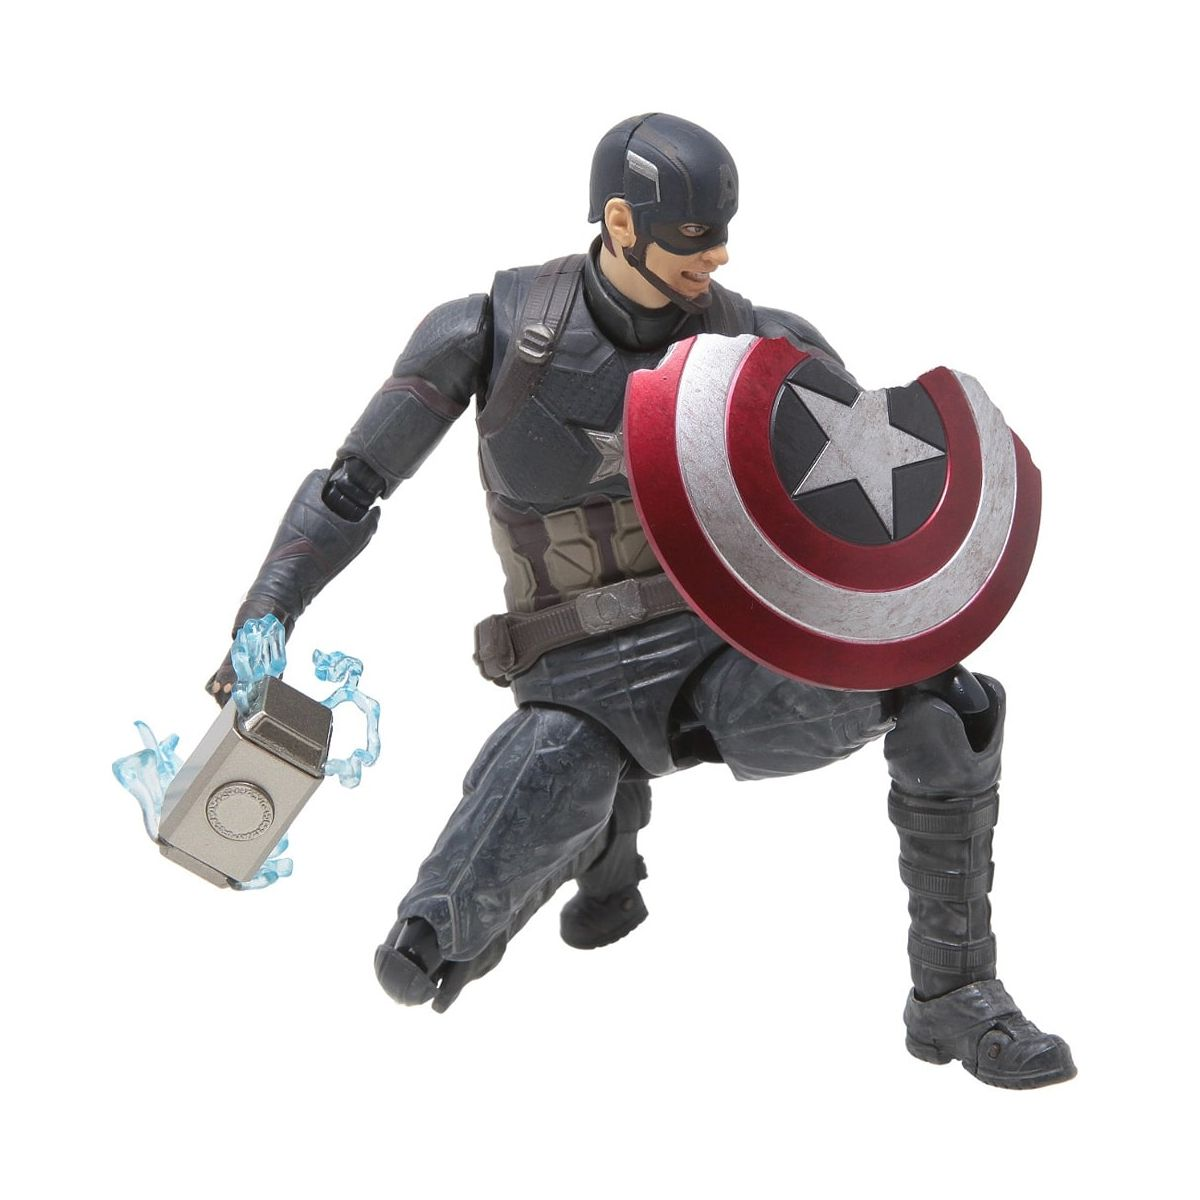 Action Figure Capitão América Batalha Final: S.H. Figuarts Vingadores Ultimato Vingadores Ultimato